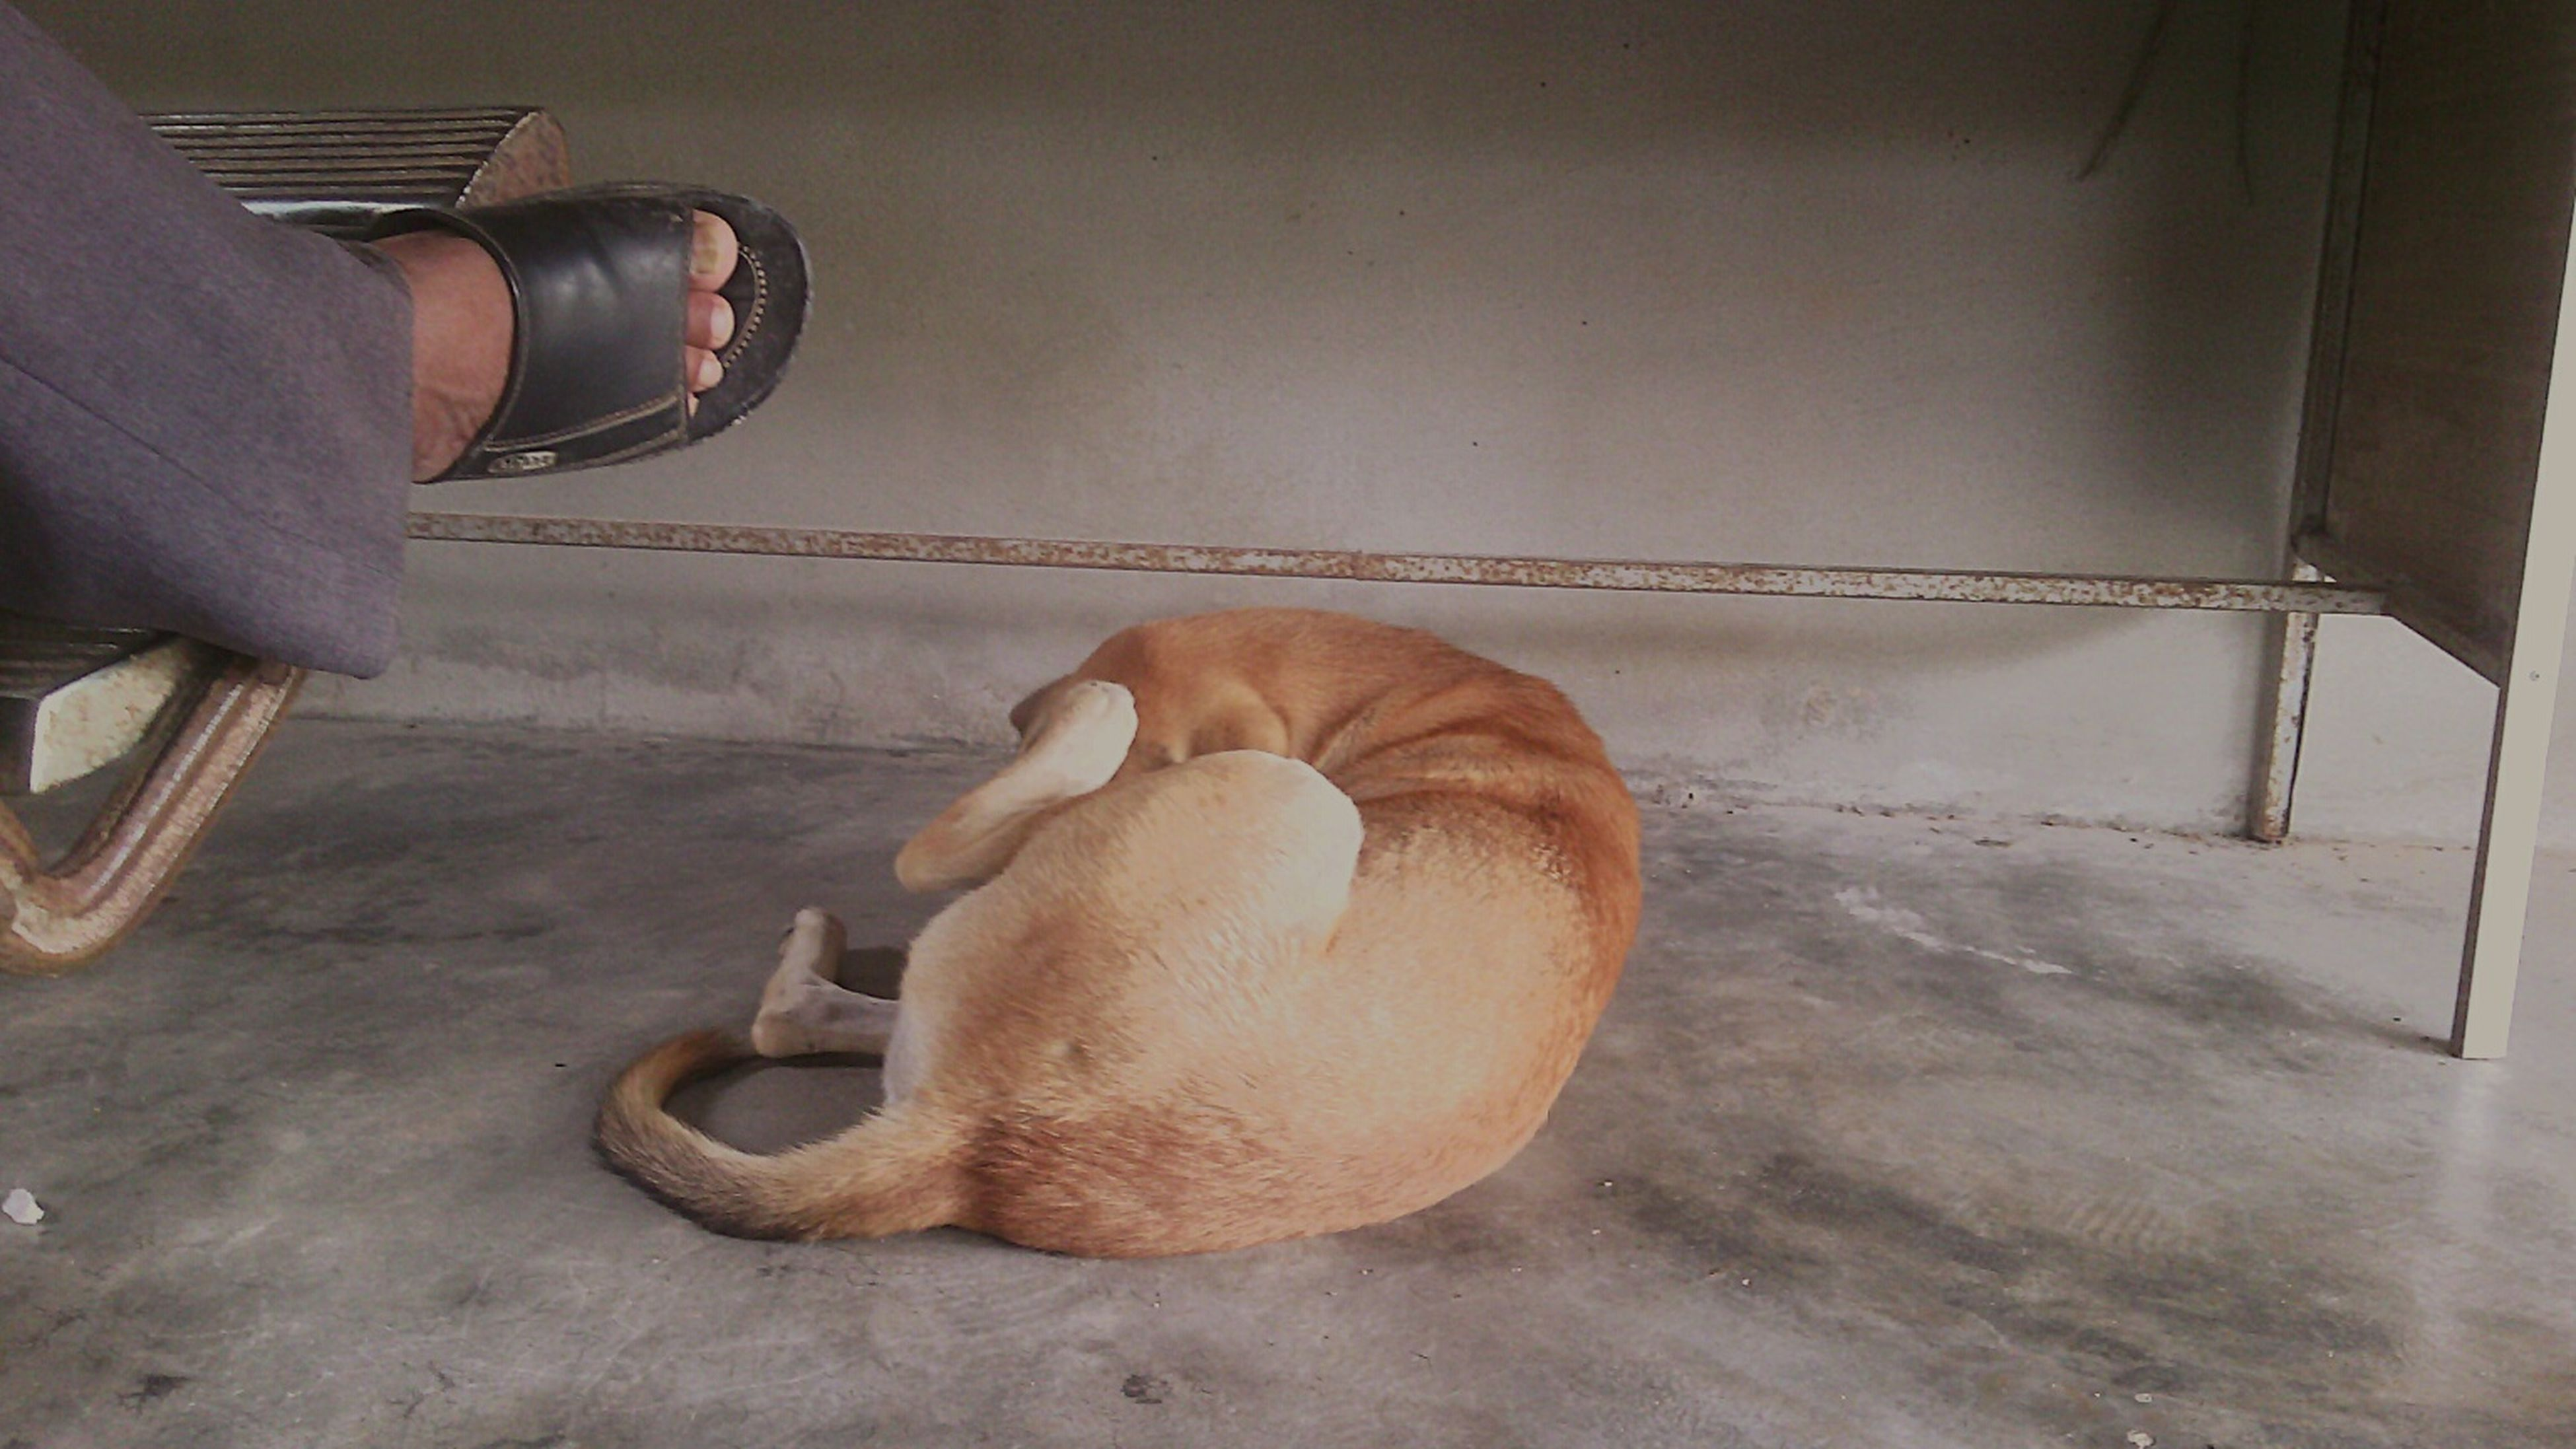 indoors, domestic animals, one animal, dog, animal themes, relaxation, mammal, pets, low section, sitting, home interior, lying down, part of, sleeping, cropped, sunlight, high angle view, day